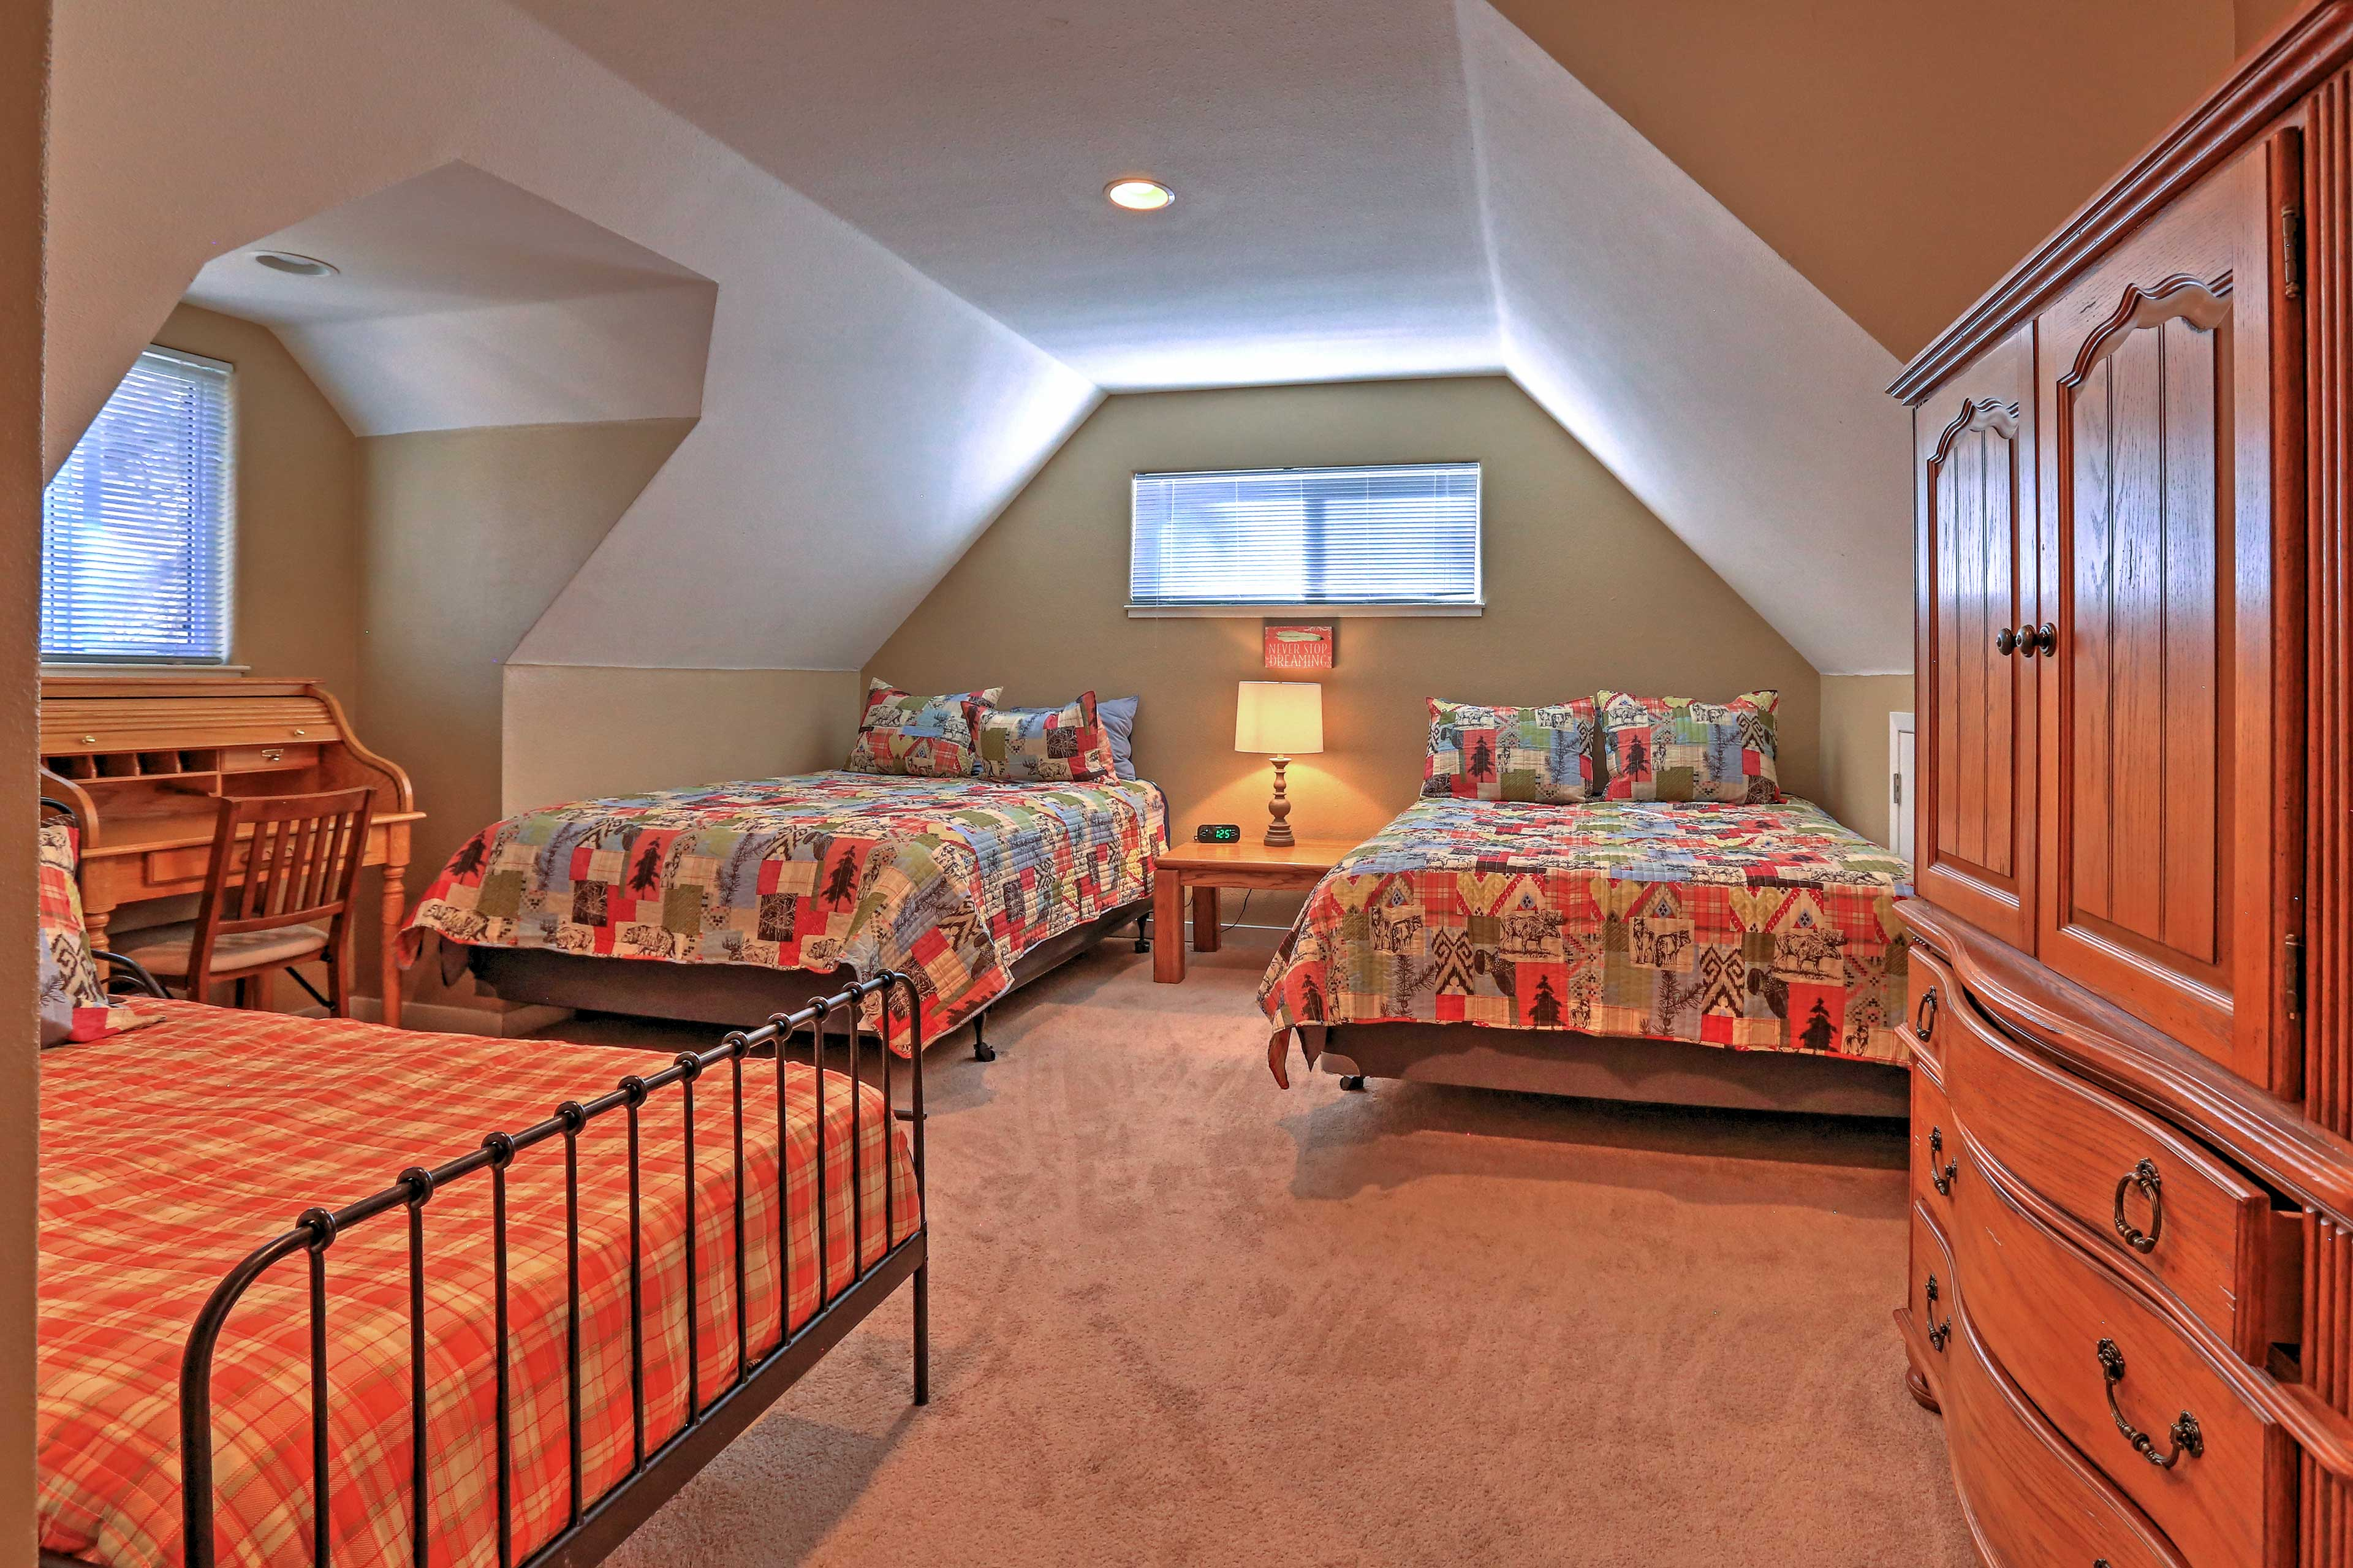 This third bedroom boasts 2 queen beds and a twin bed.